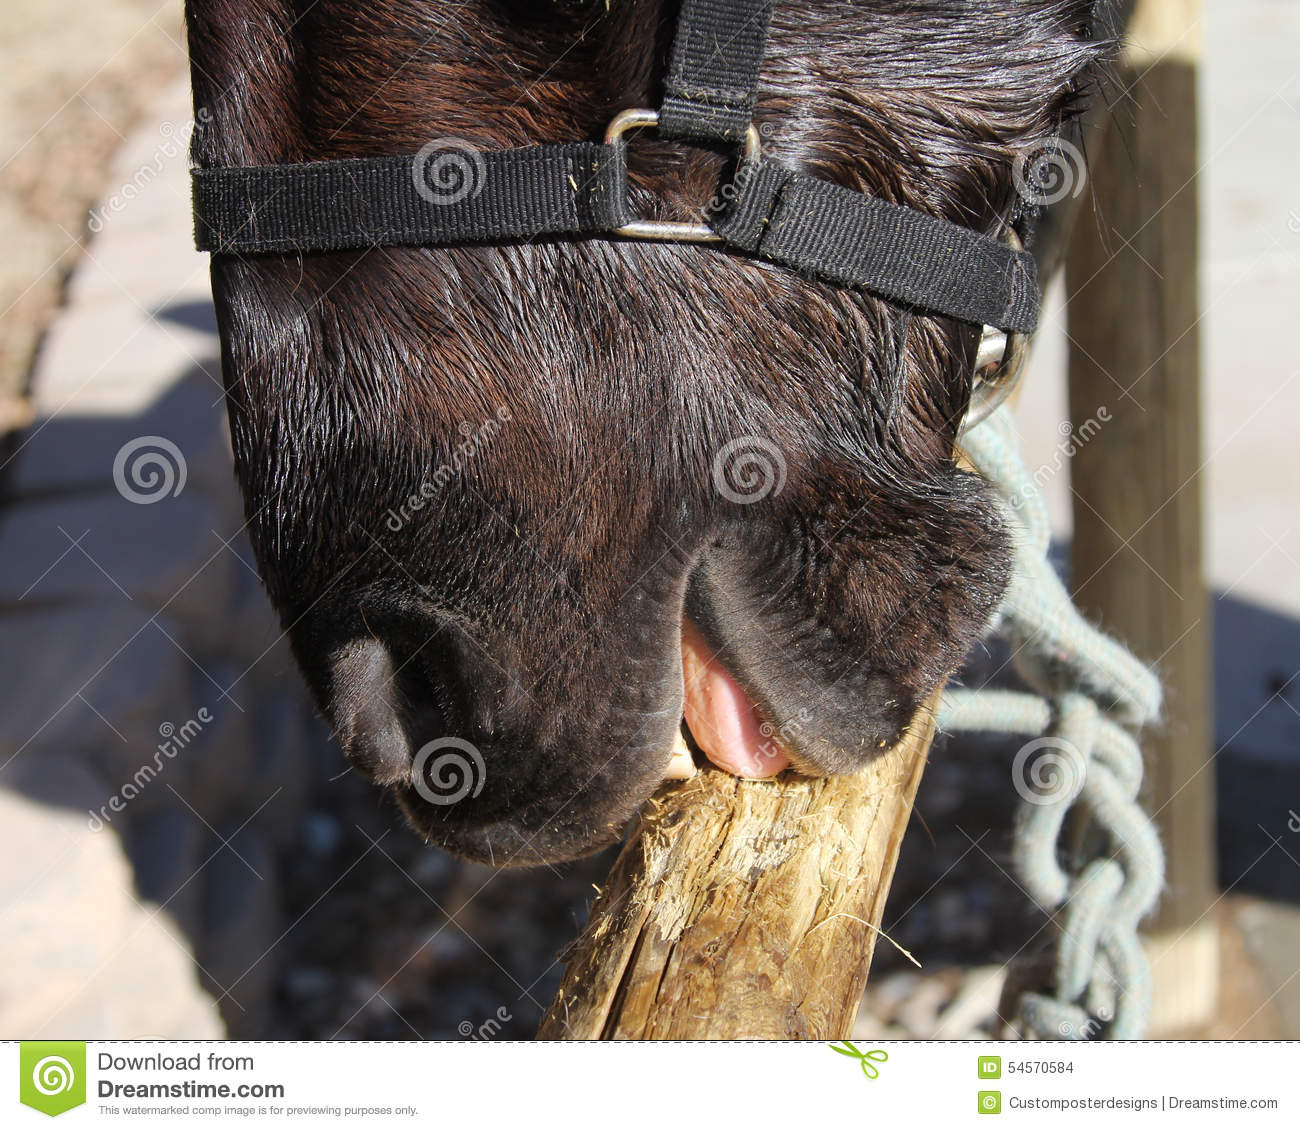 Download A horse chewing wood. stock photo. Image of mouth, west - 54570584